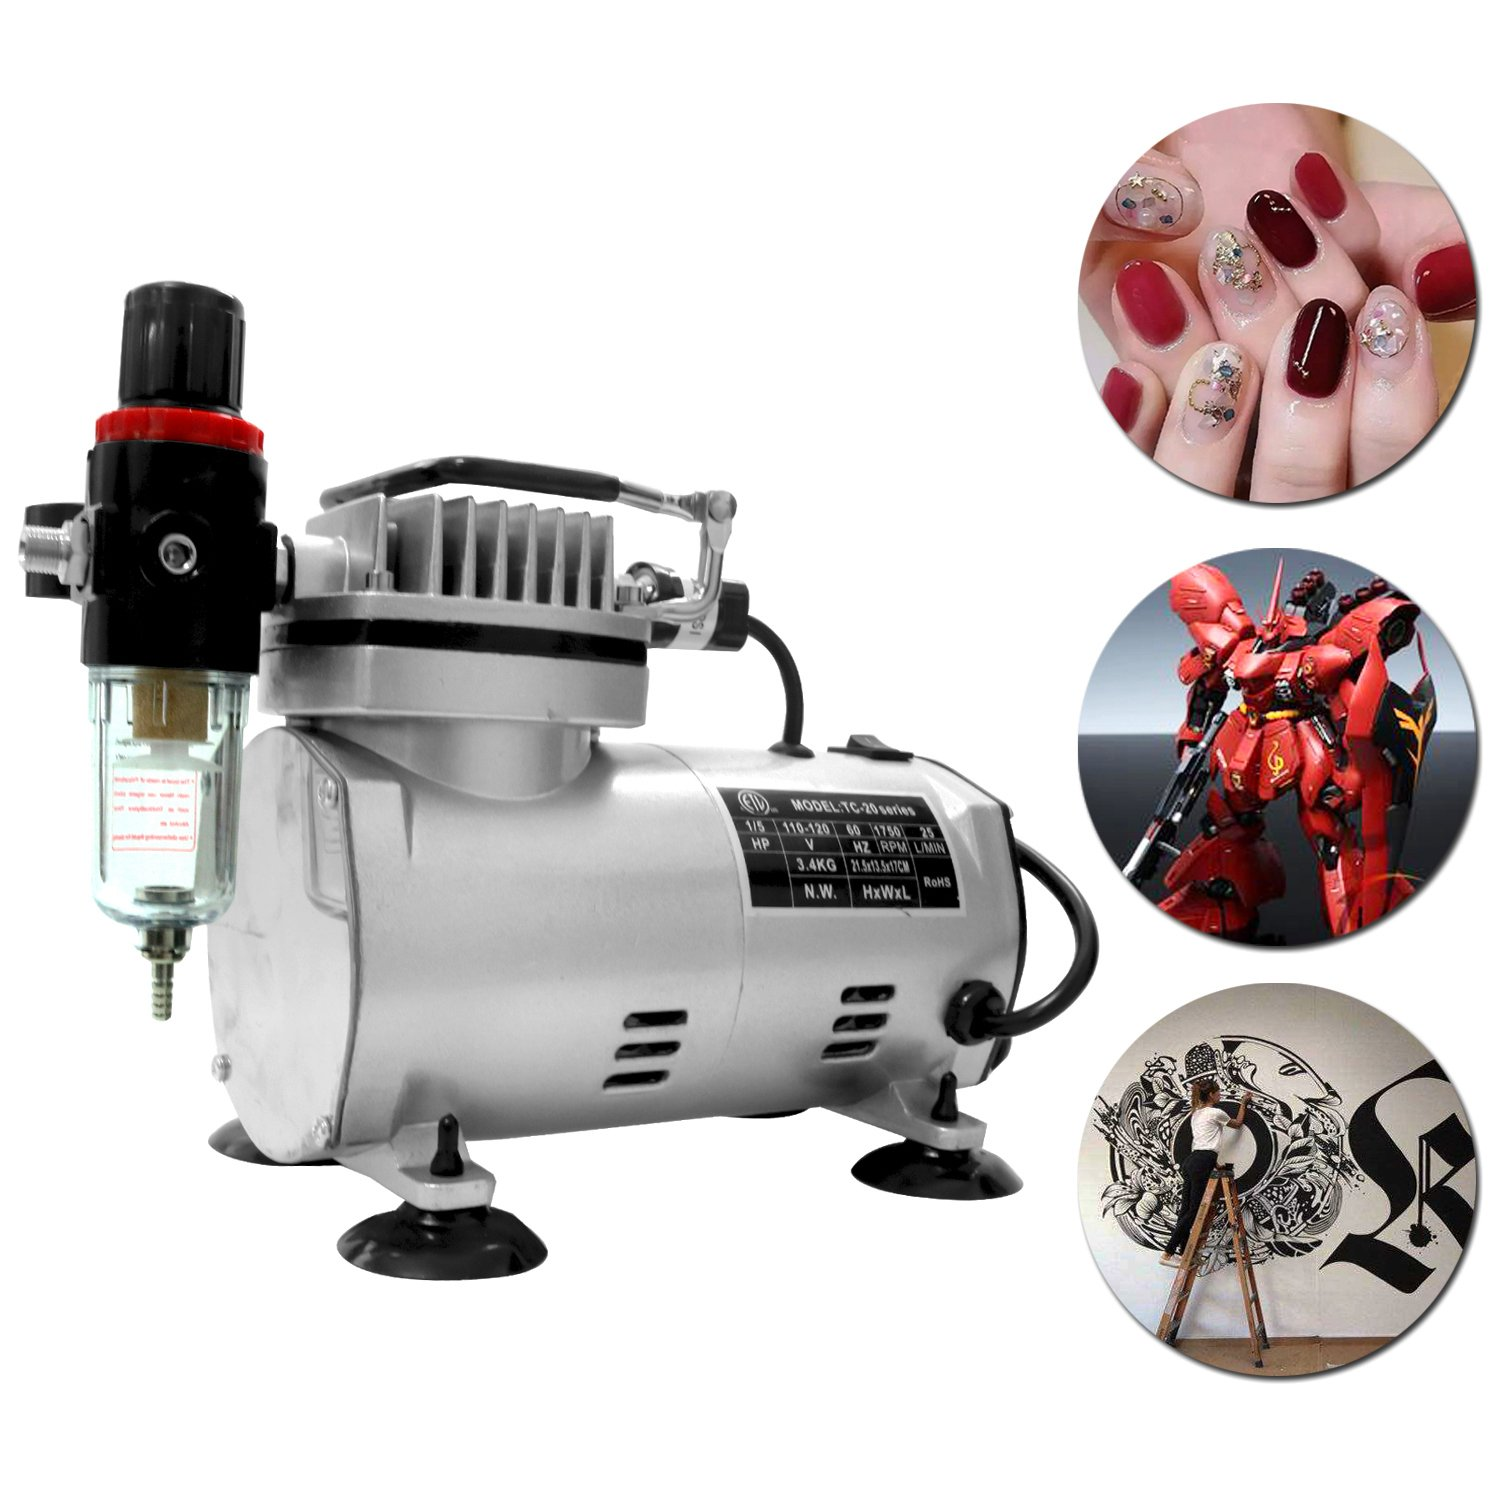 1/5 HP Airbrush air Compressor high Performance with Water Trap Filter, 6ft air Hose, 2 Dual-Brush Holder for Hobby Paint,Cakes,Tatoo,Iwata (0002) Best Sunshine